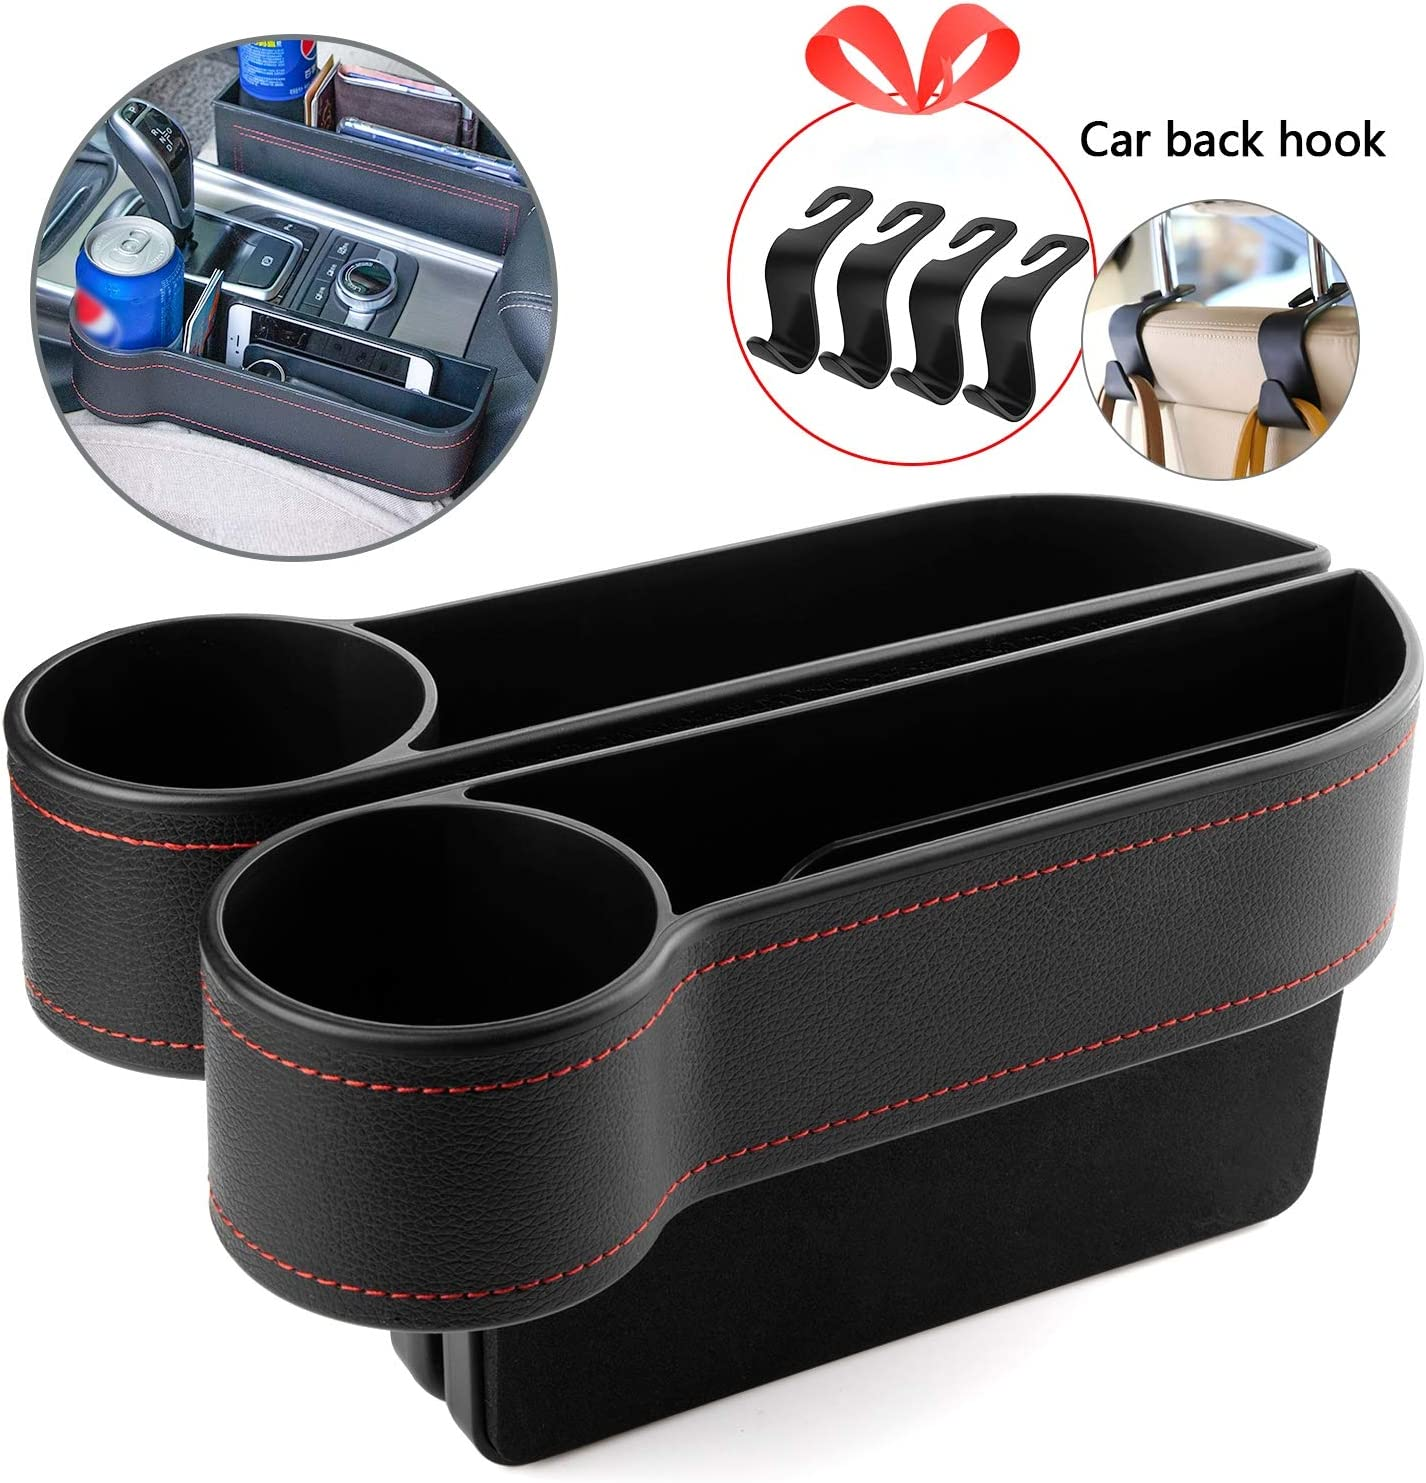 Console Side Pocket New Edition Homesprit 2 Packs Premium PU Black Car Seat Gap Filler,No Deformation,Environmentally Friendly Materials Cup Holder for Cellphone,Wallet